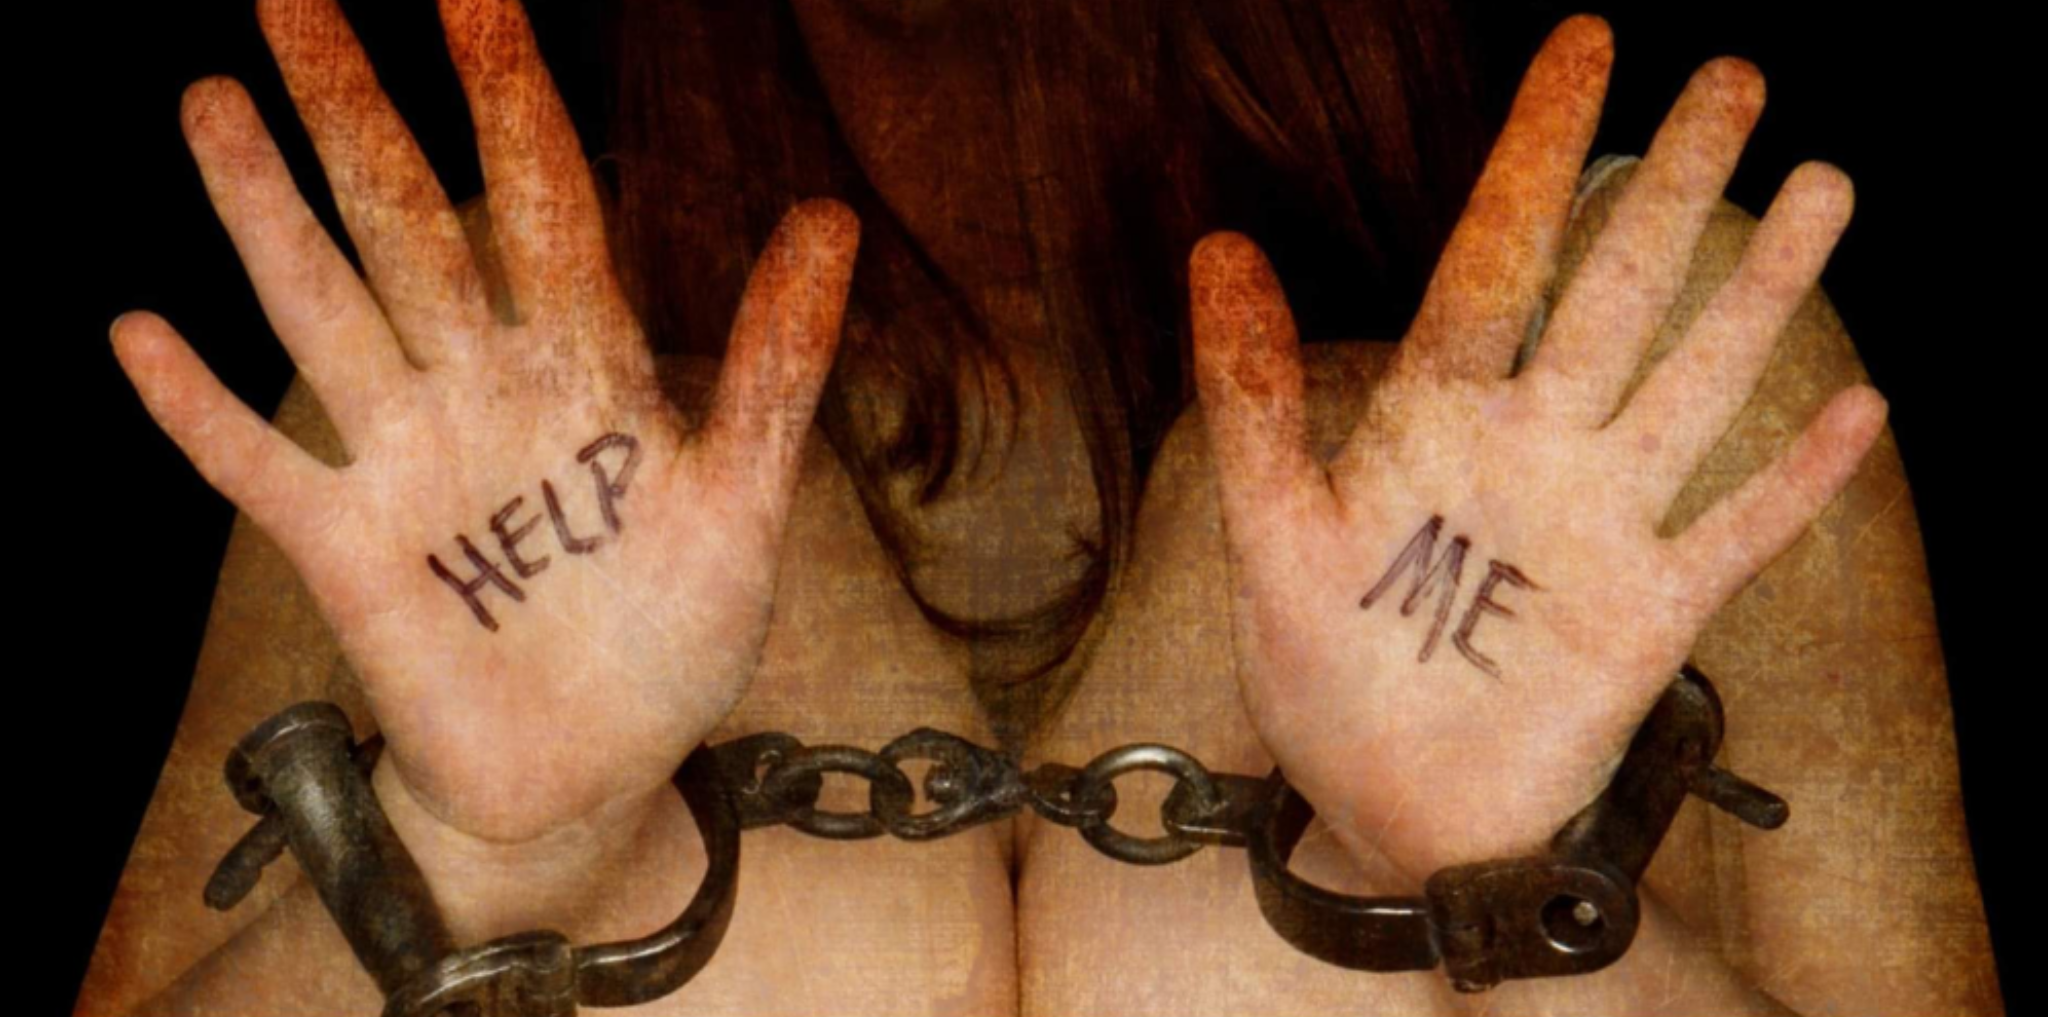 Jenny Keefe's Fundraiser-Help End Human Trafficking